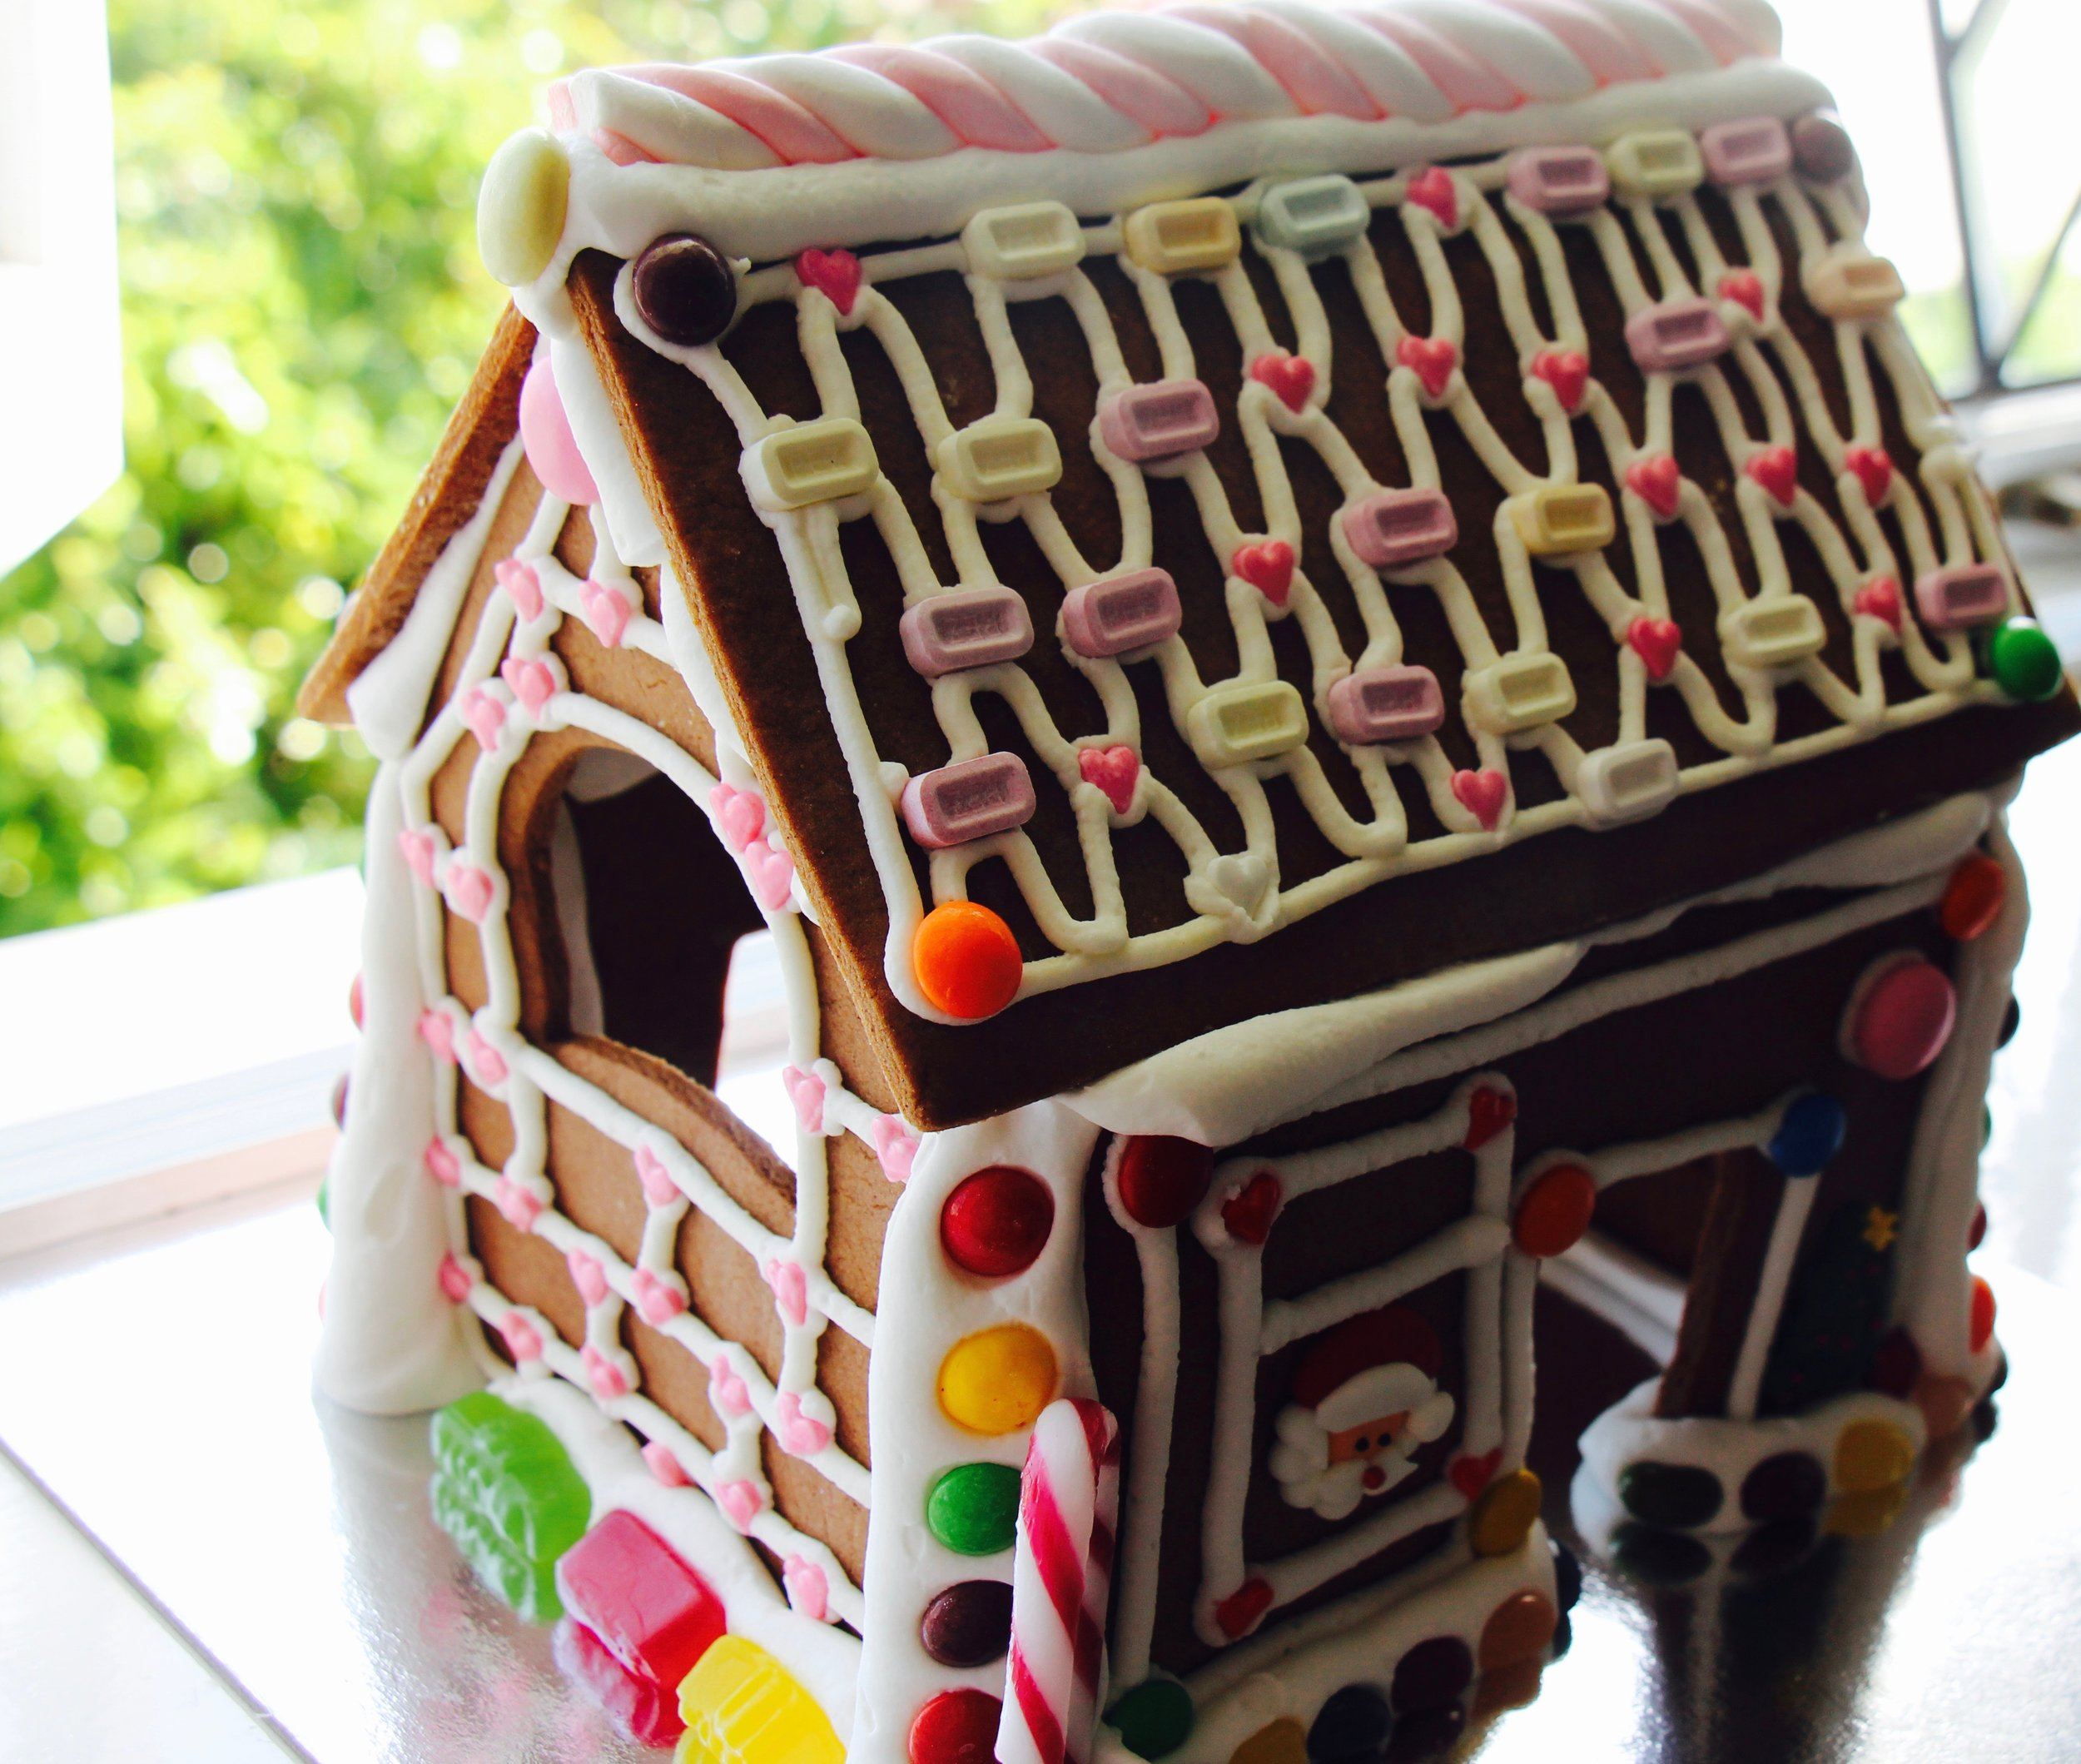 A very special pink-featured Christmas gingerbread house!